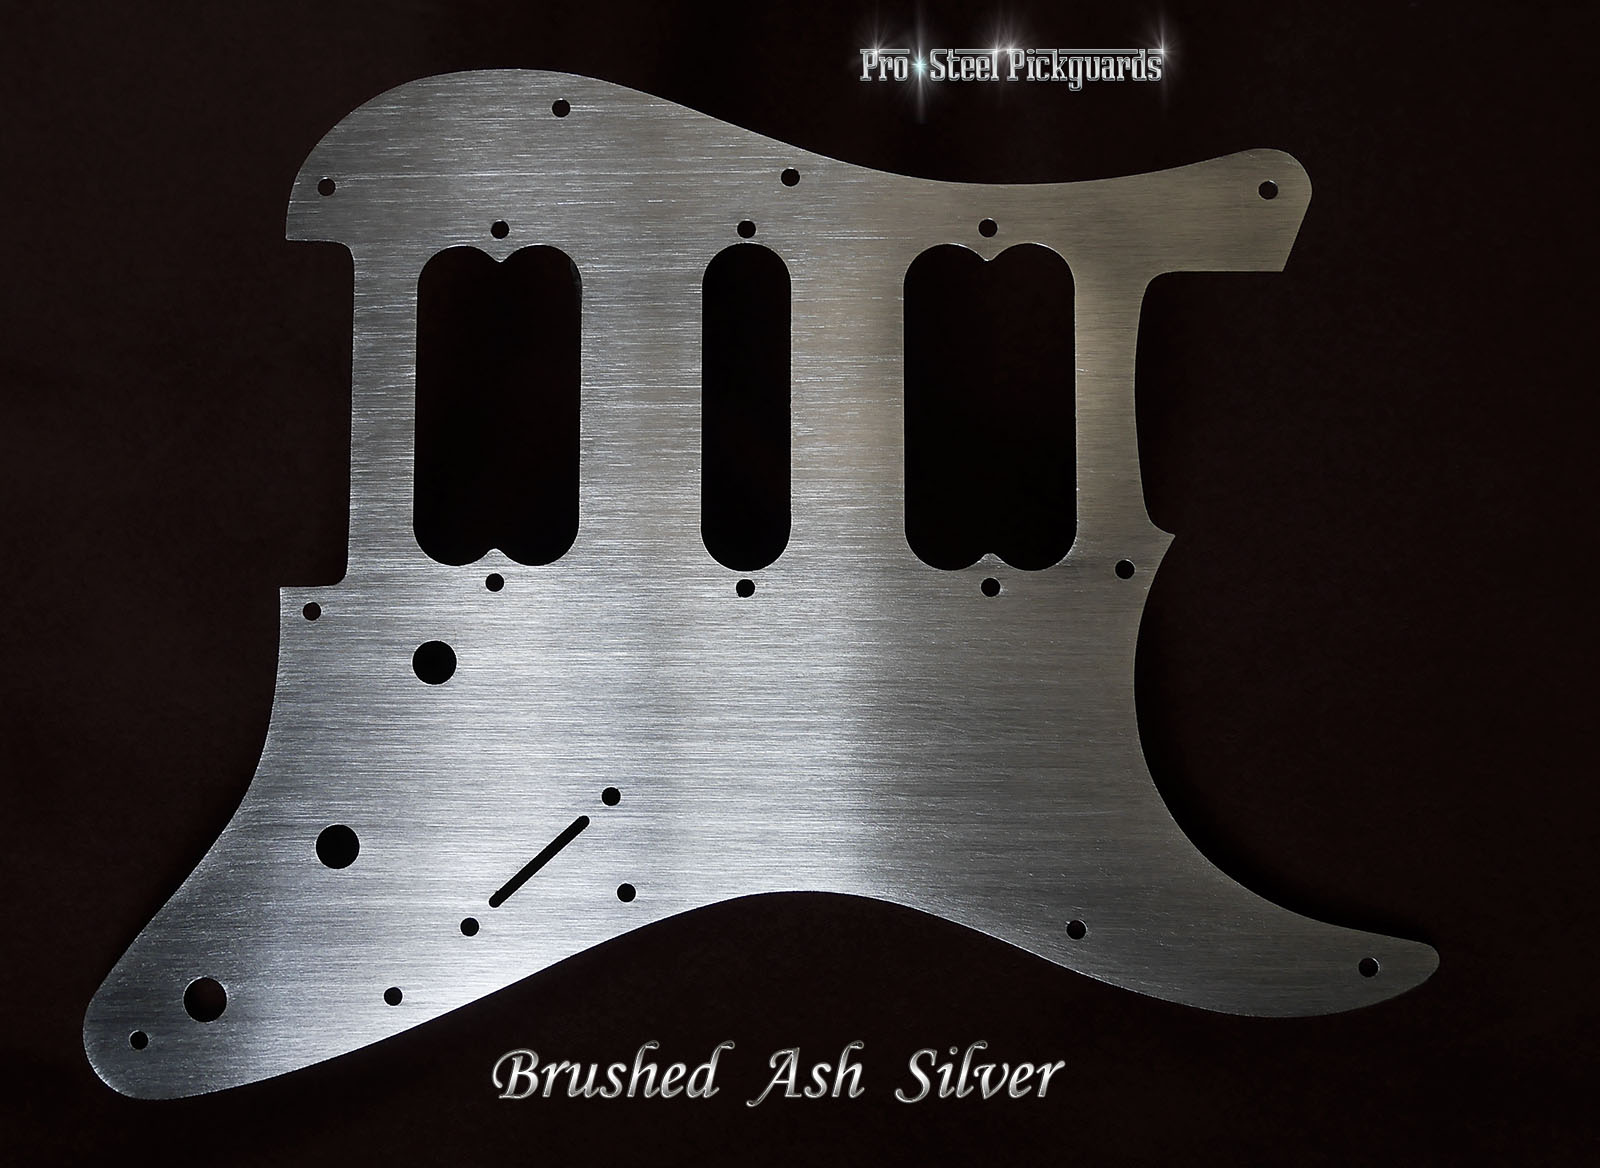 Shop Gallery Pro Steel Pickguards